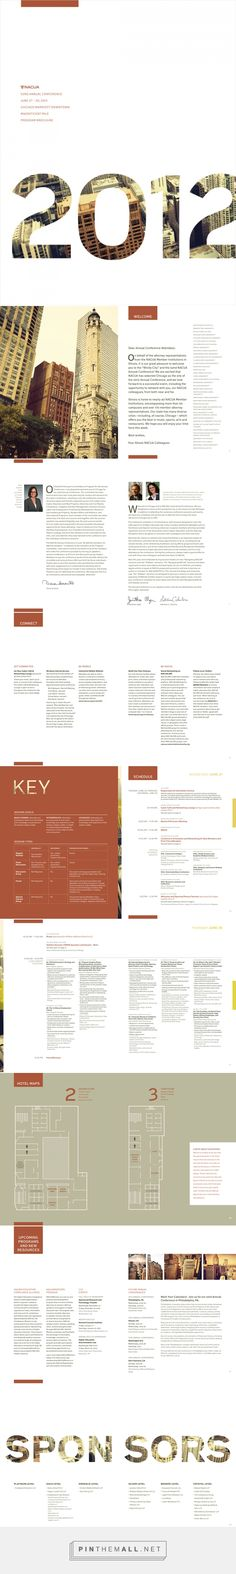 2012 Annual Conference Program Book on Behance... - a grouped images picture - Pin Them All